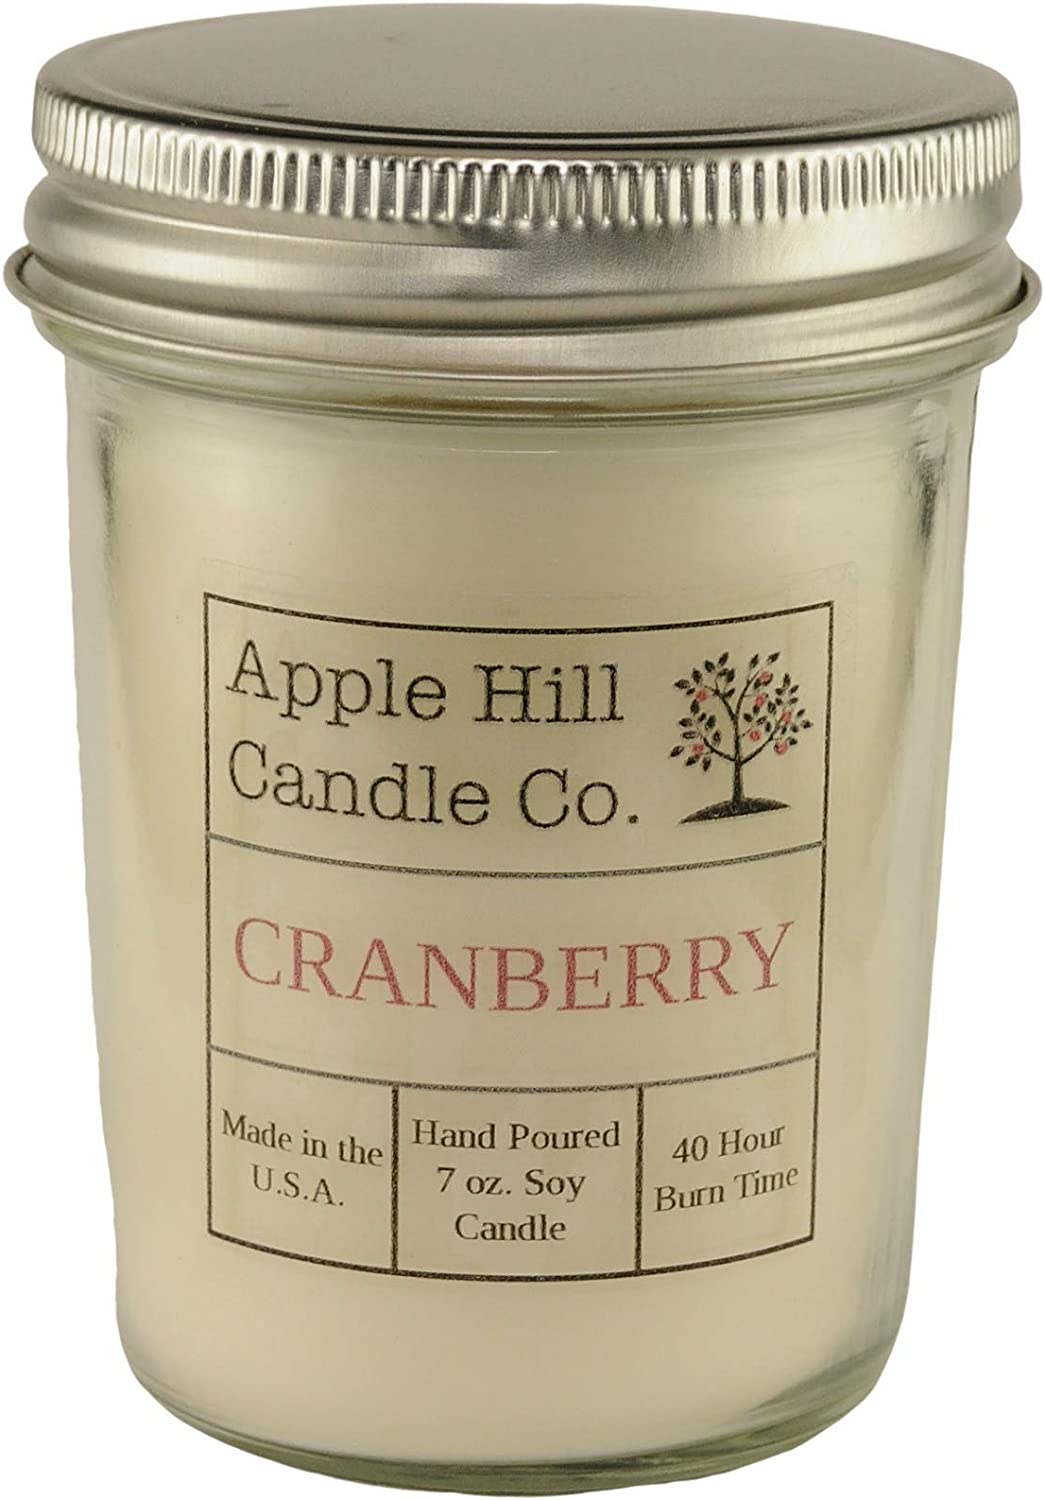 Handmade Natural Soy Candle - Cranberry (7 oz.)